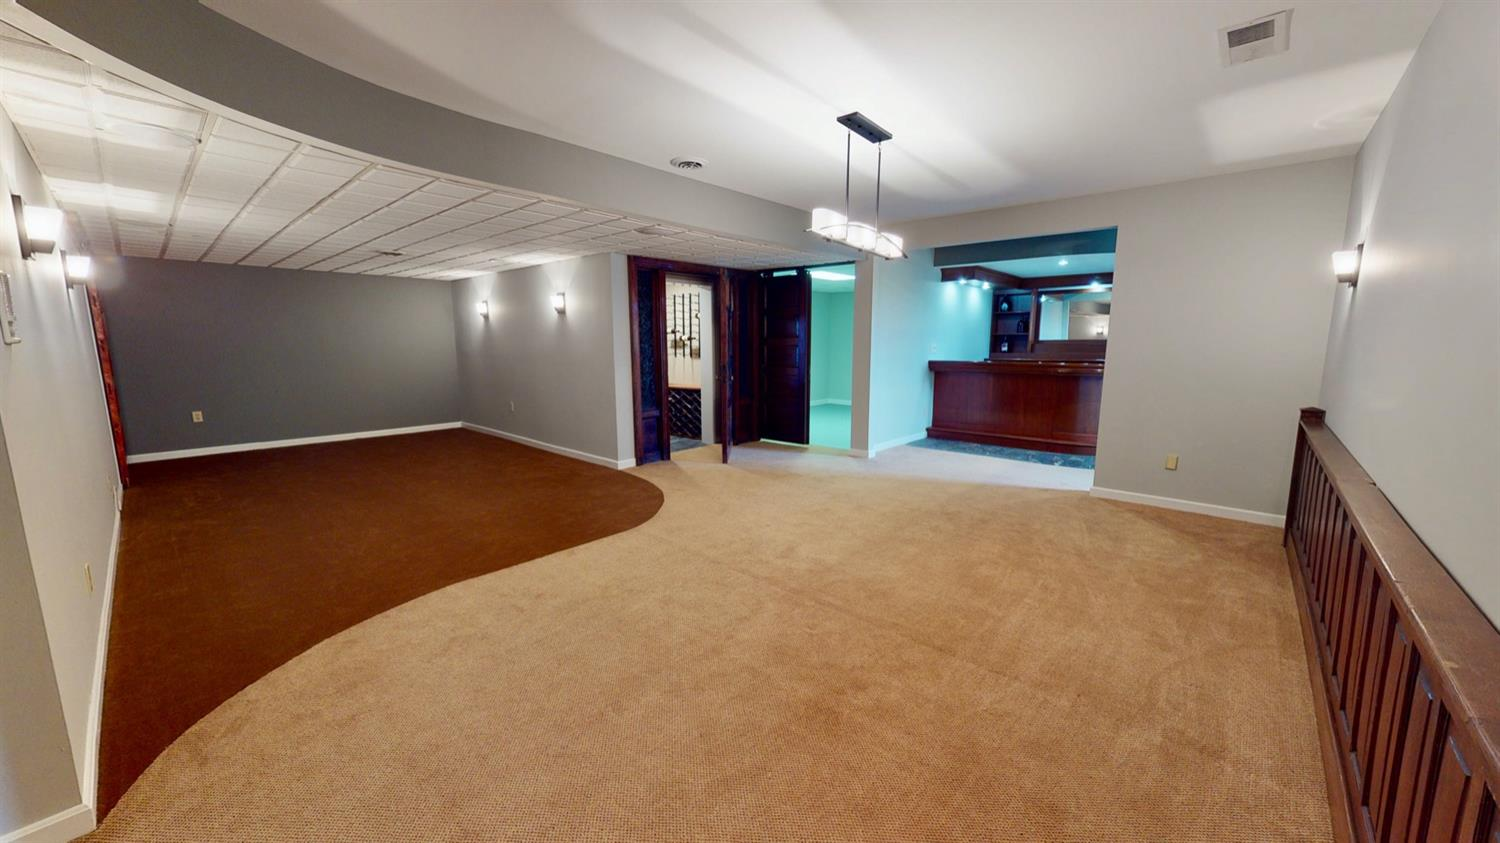 Entrance to billiard and media rooms with access to wine cellar, workout room and full bar complete with sink, refrigerators and dance club.